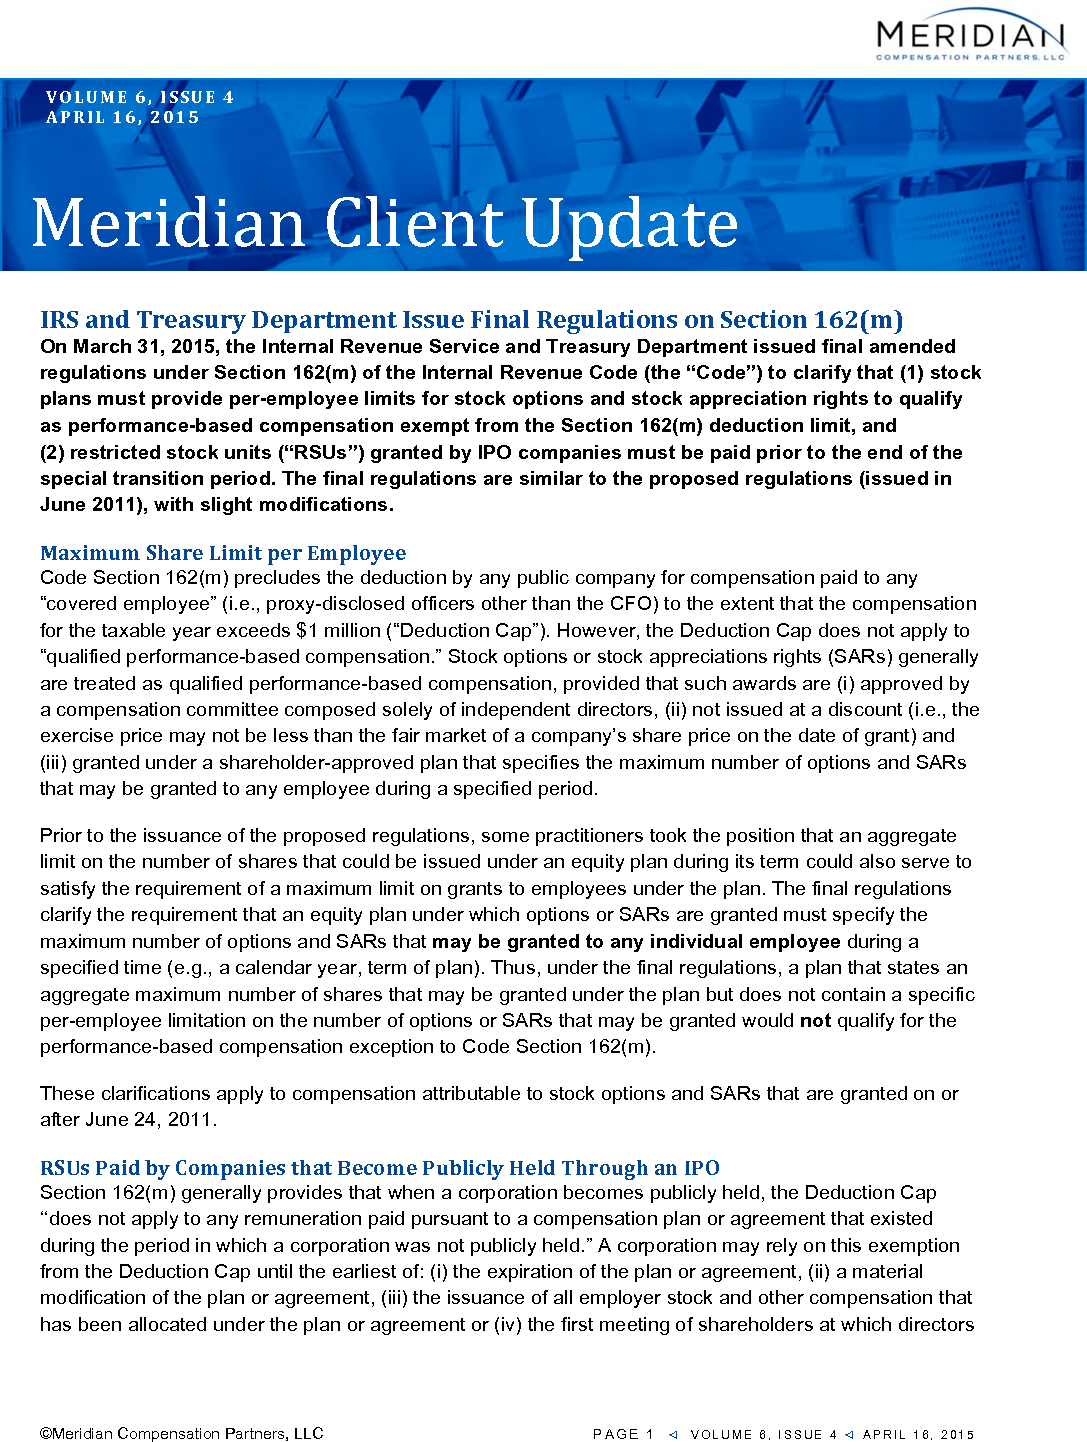 IRS and Treasury Department Issue Final Regulations on Section 162(m) (PDF)